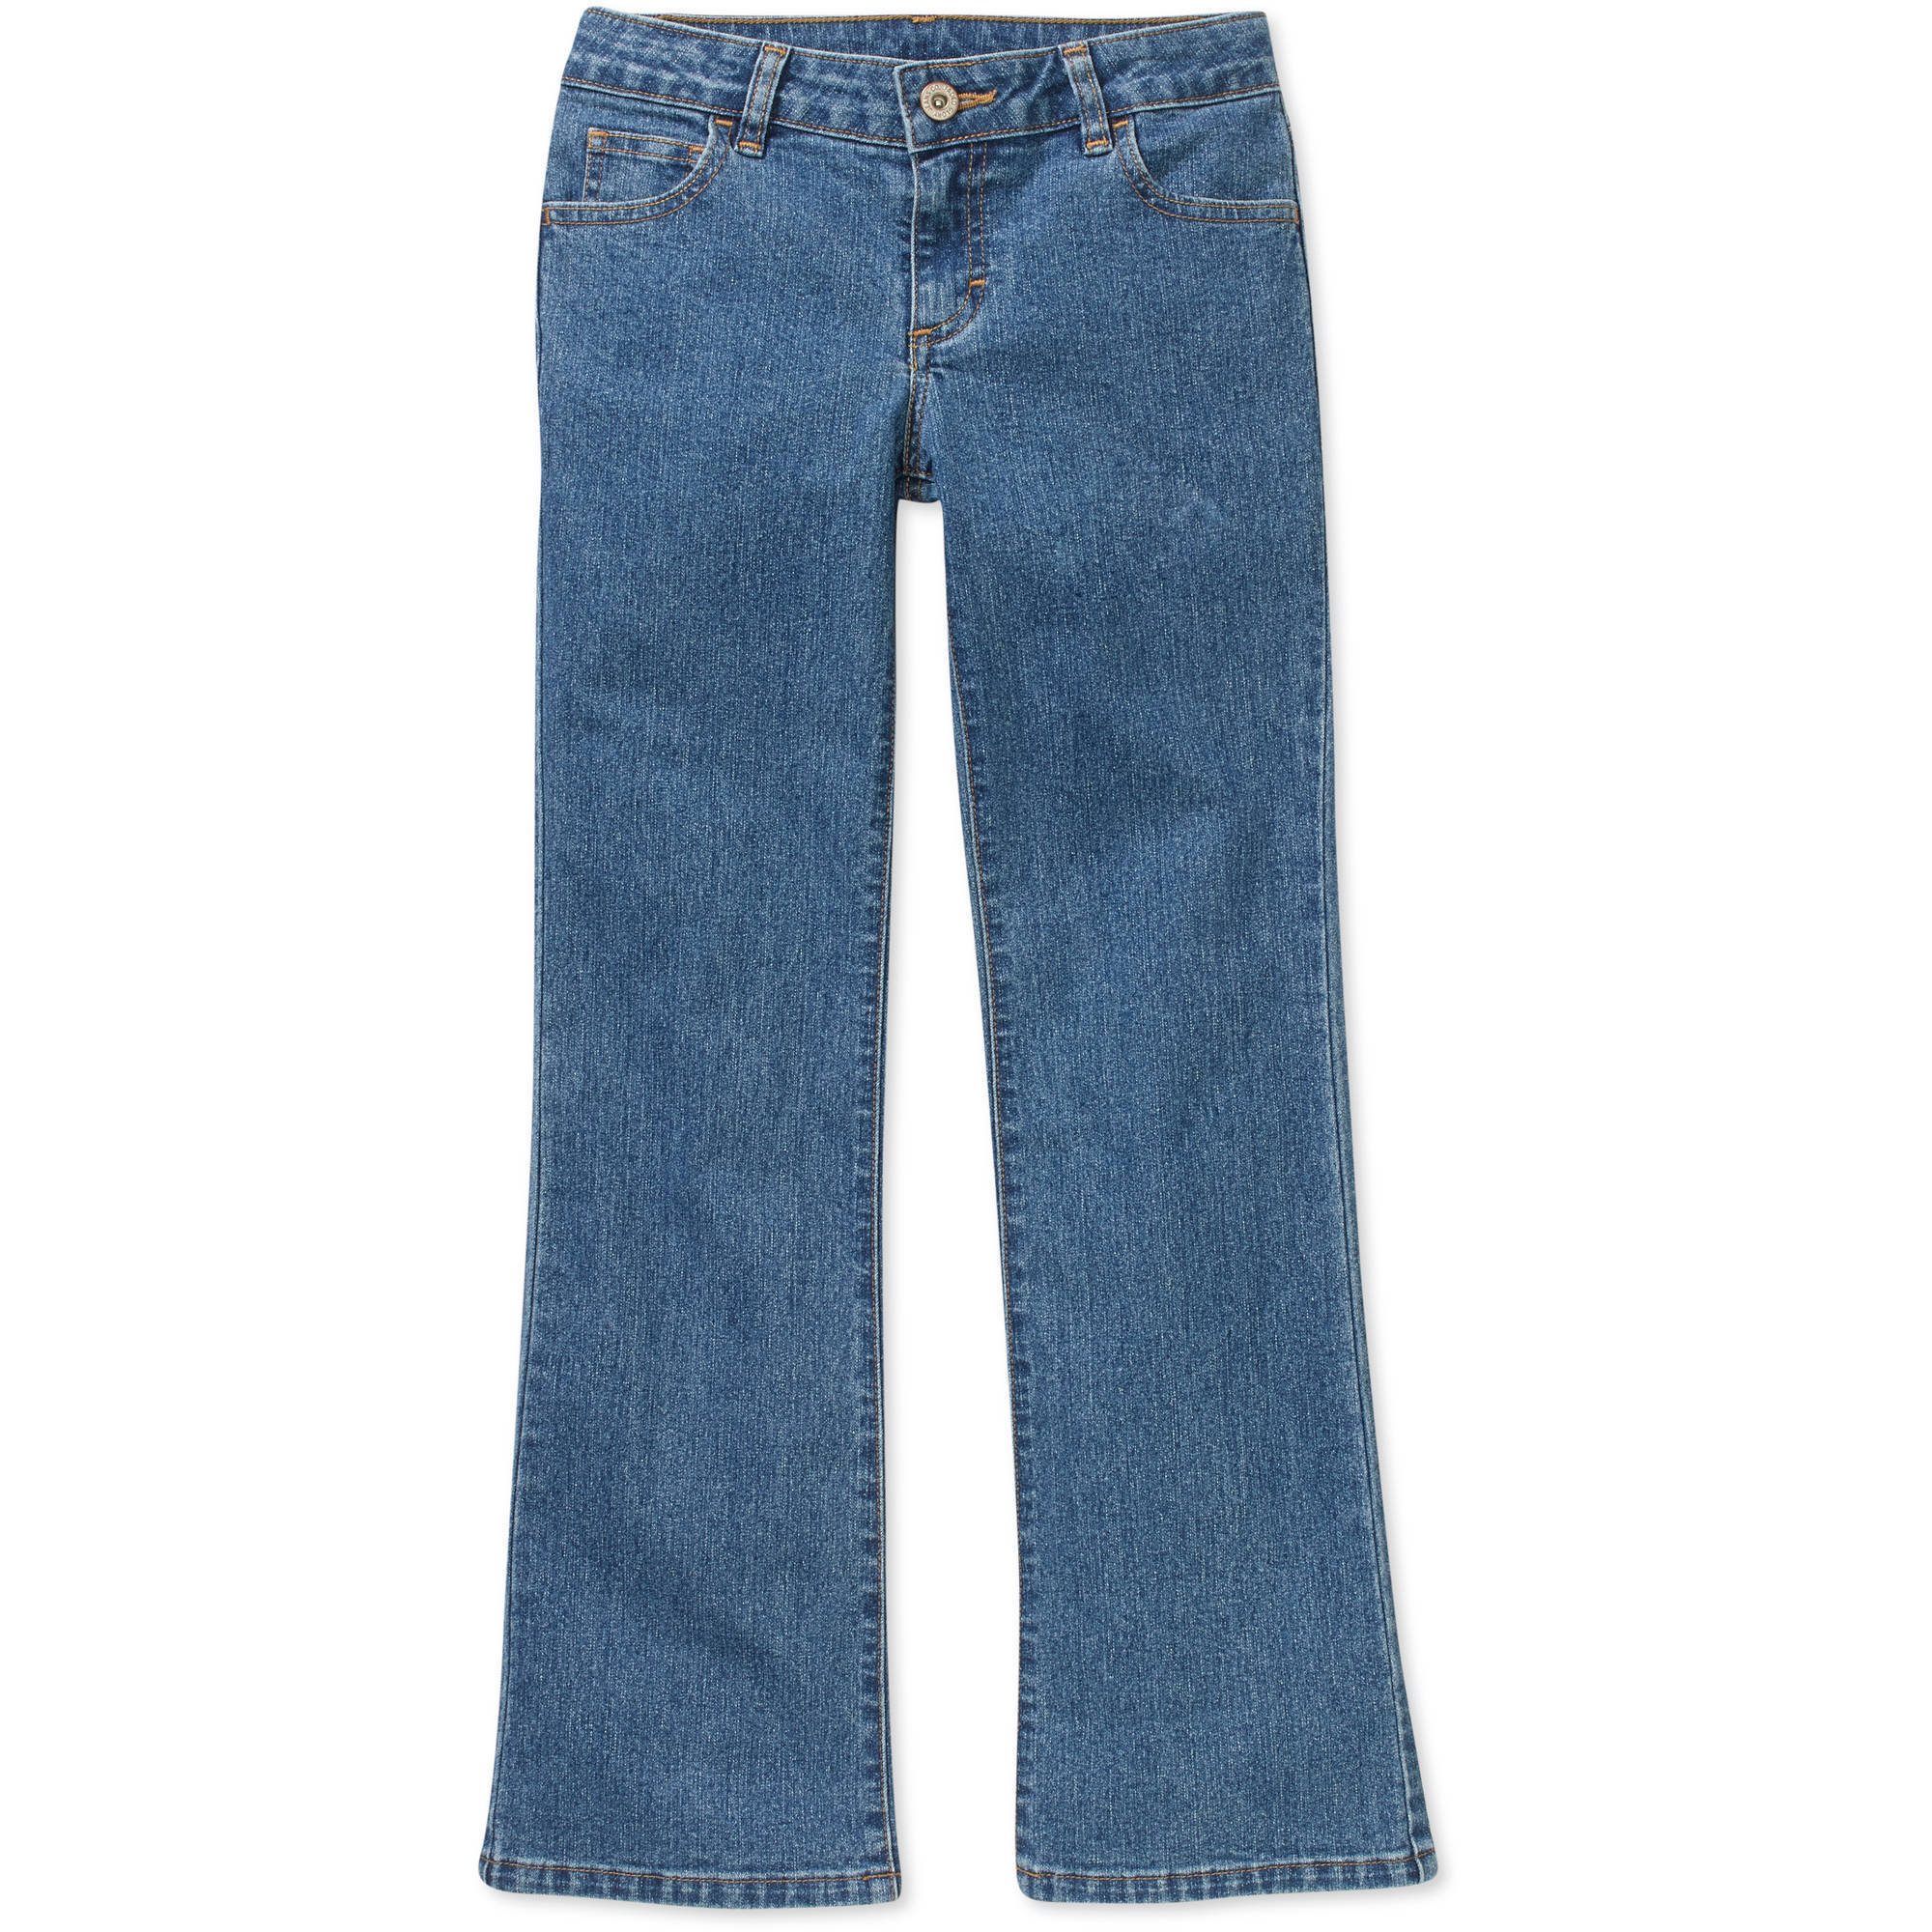 Faded Glory Girls' Bootcut Jeans - Walmart.com